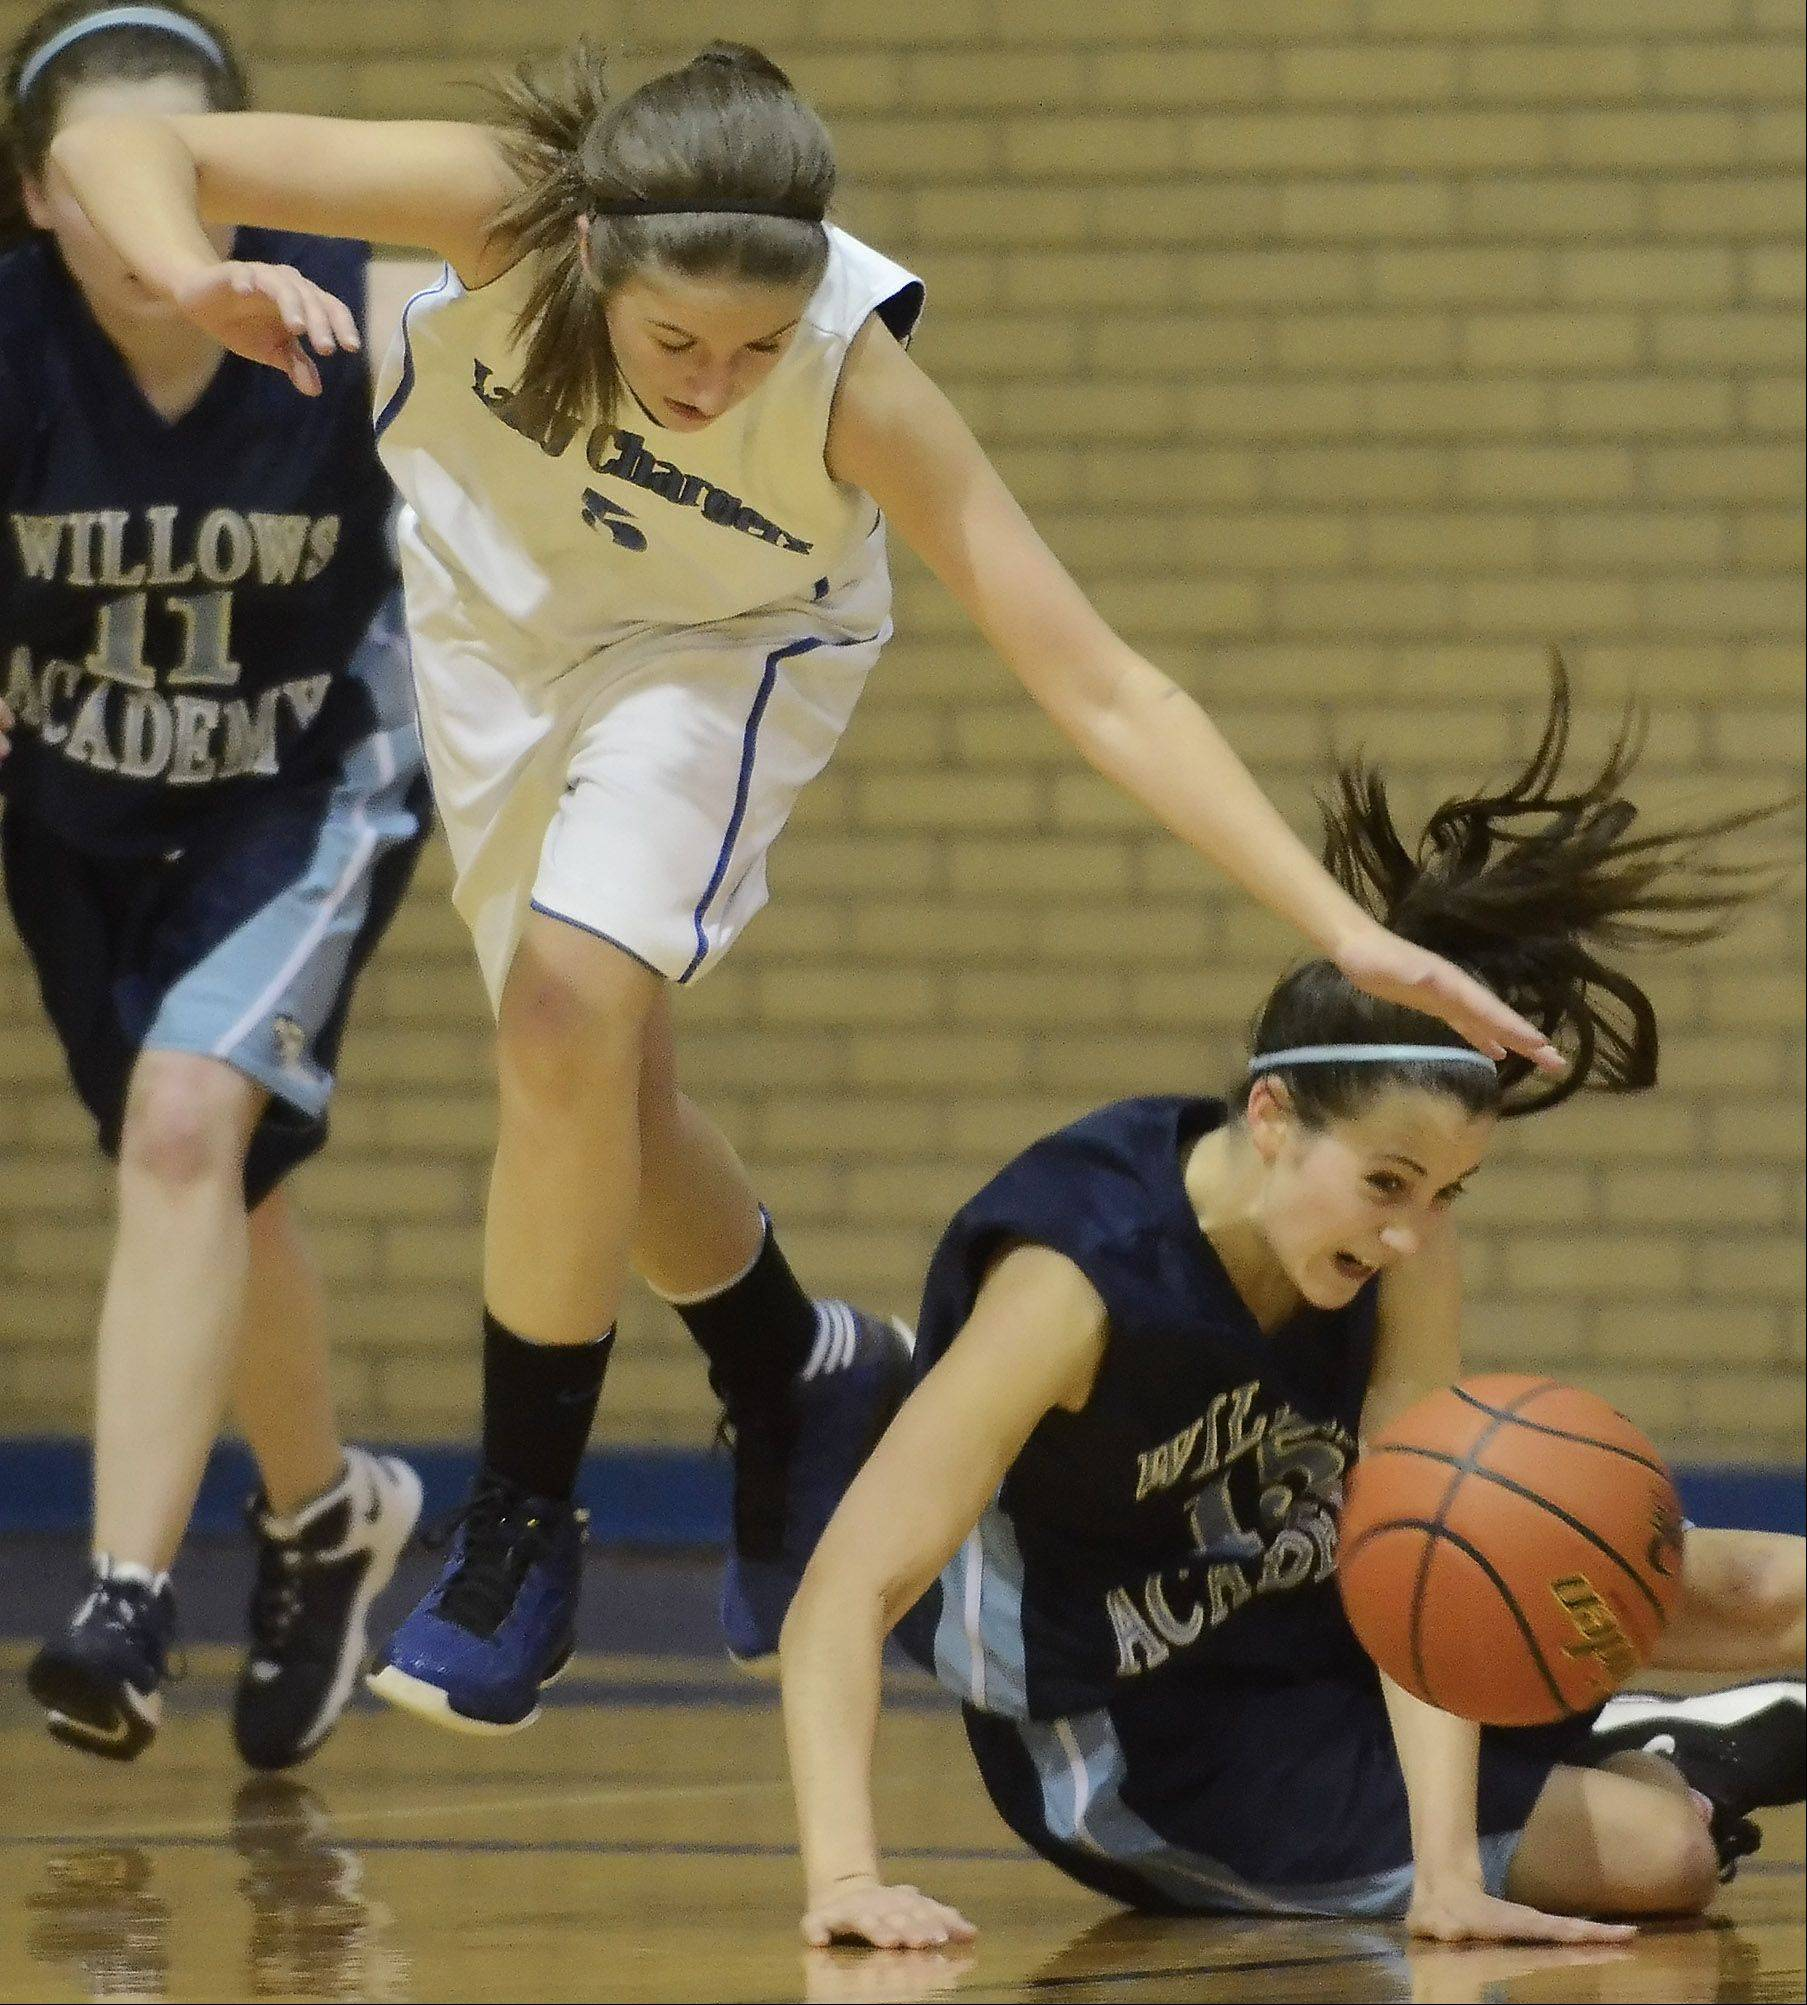 Jessica Moriarty, left, tries to take control of a loose ball as Keelin McNally of Willows Academy falls to the floor.